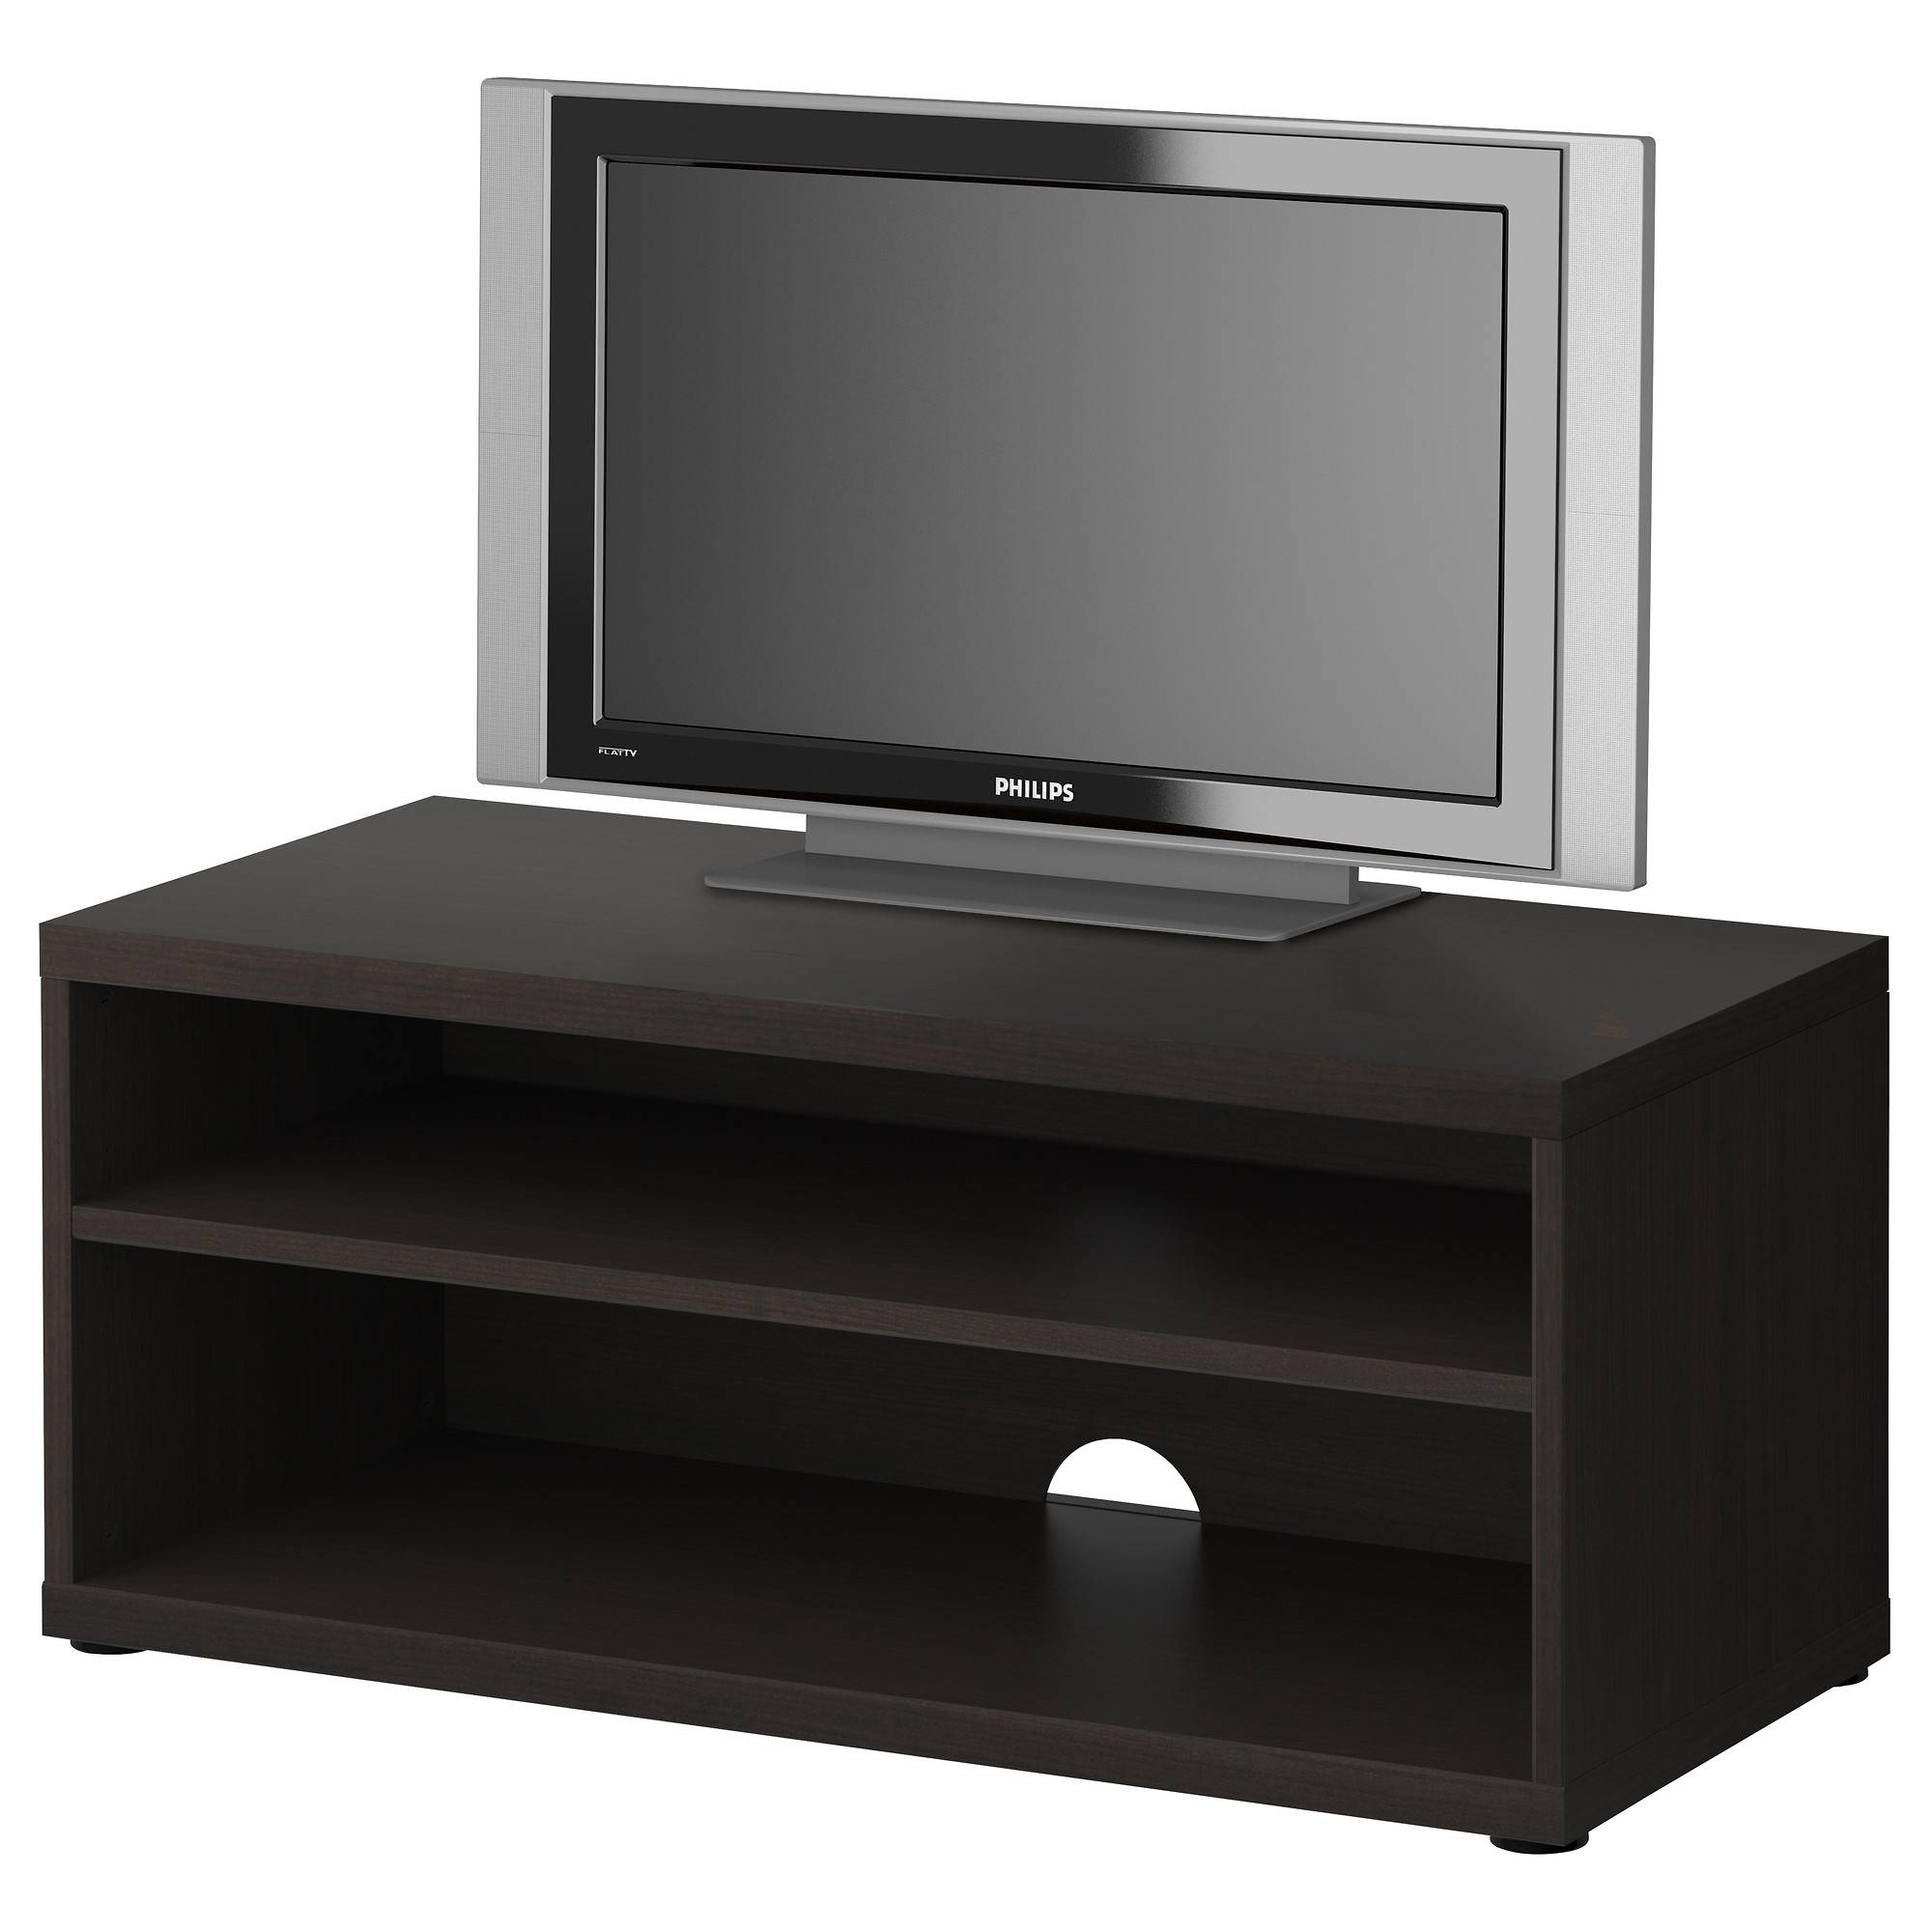 Tv Media Furniture – Tv Stands, Cabinets & Media Storage - Ikea with Tv Stands 38 Inches Wide (Image 4 of 15)